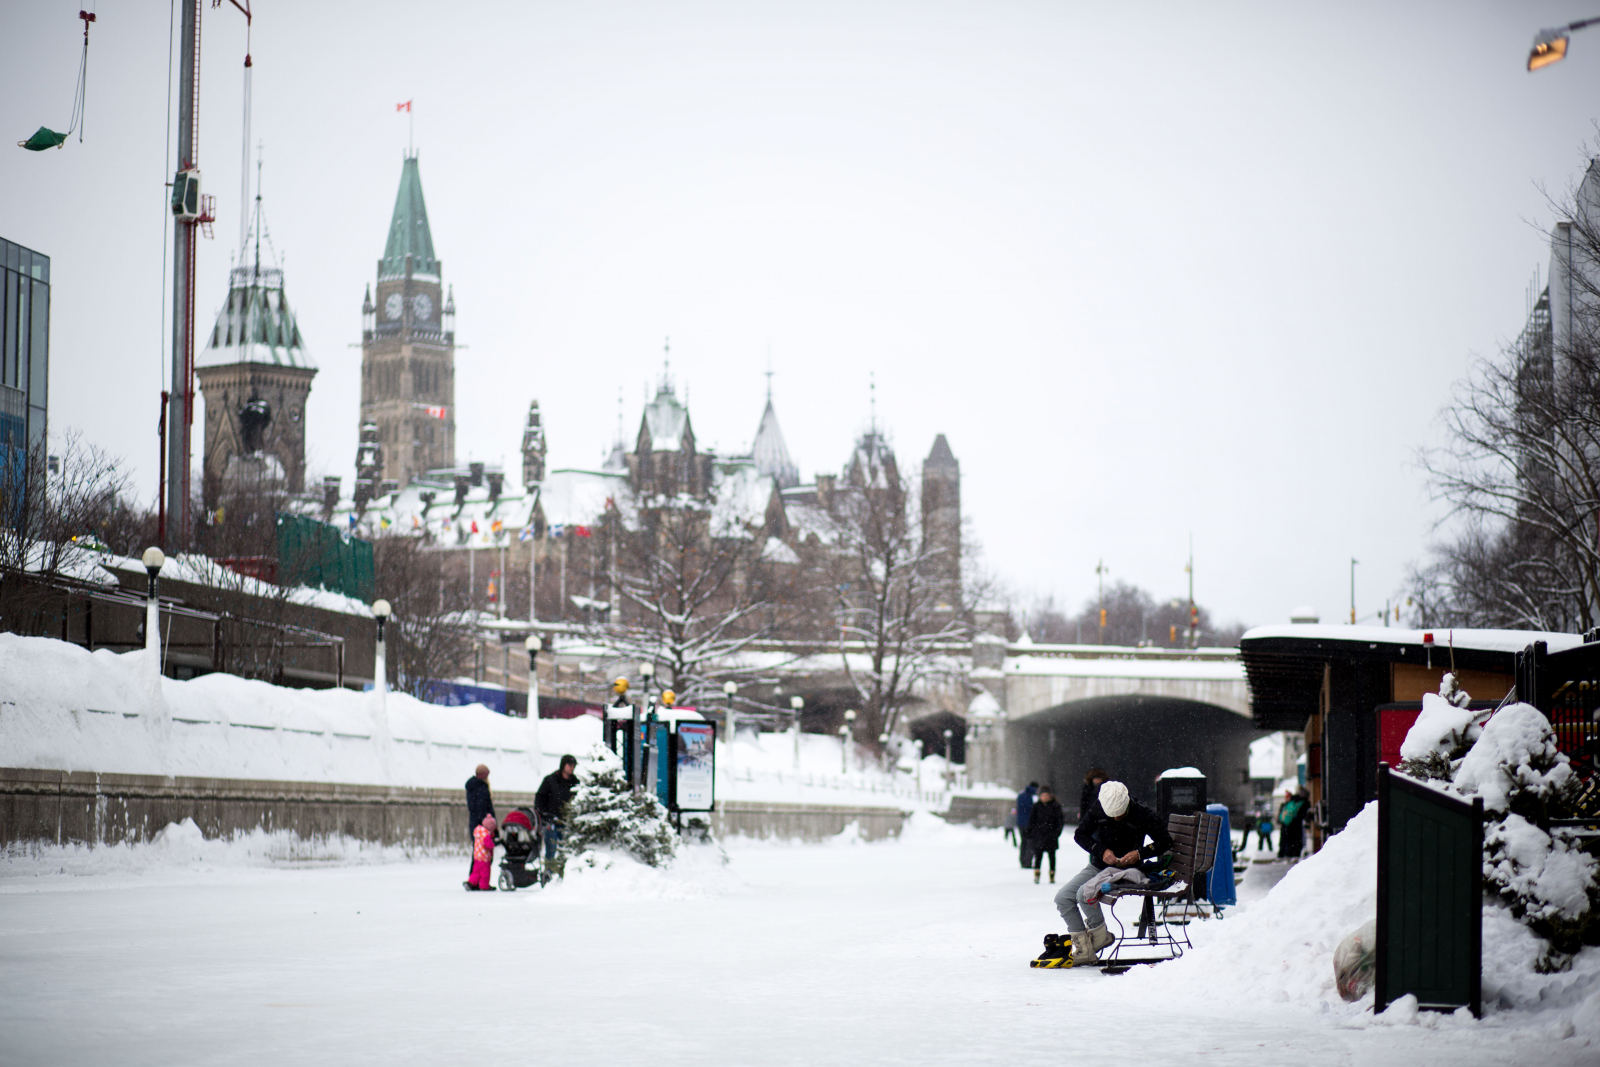 After getting buried in snow, Ottawa celebrates Winterlude in style ...